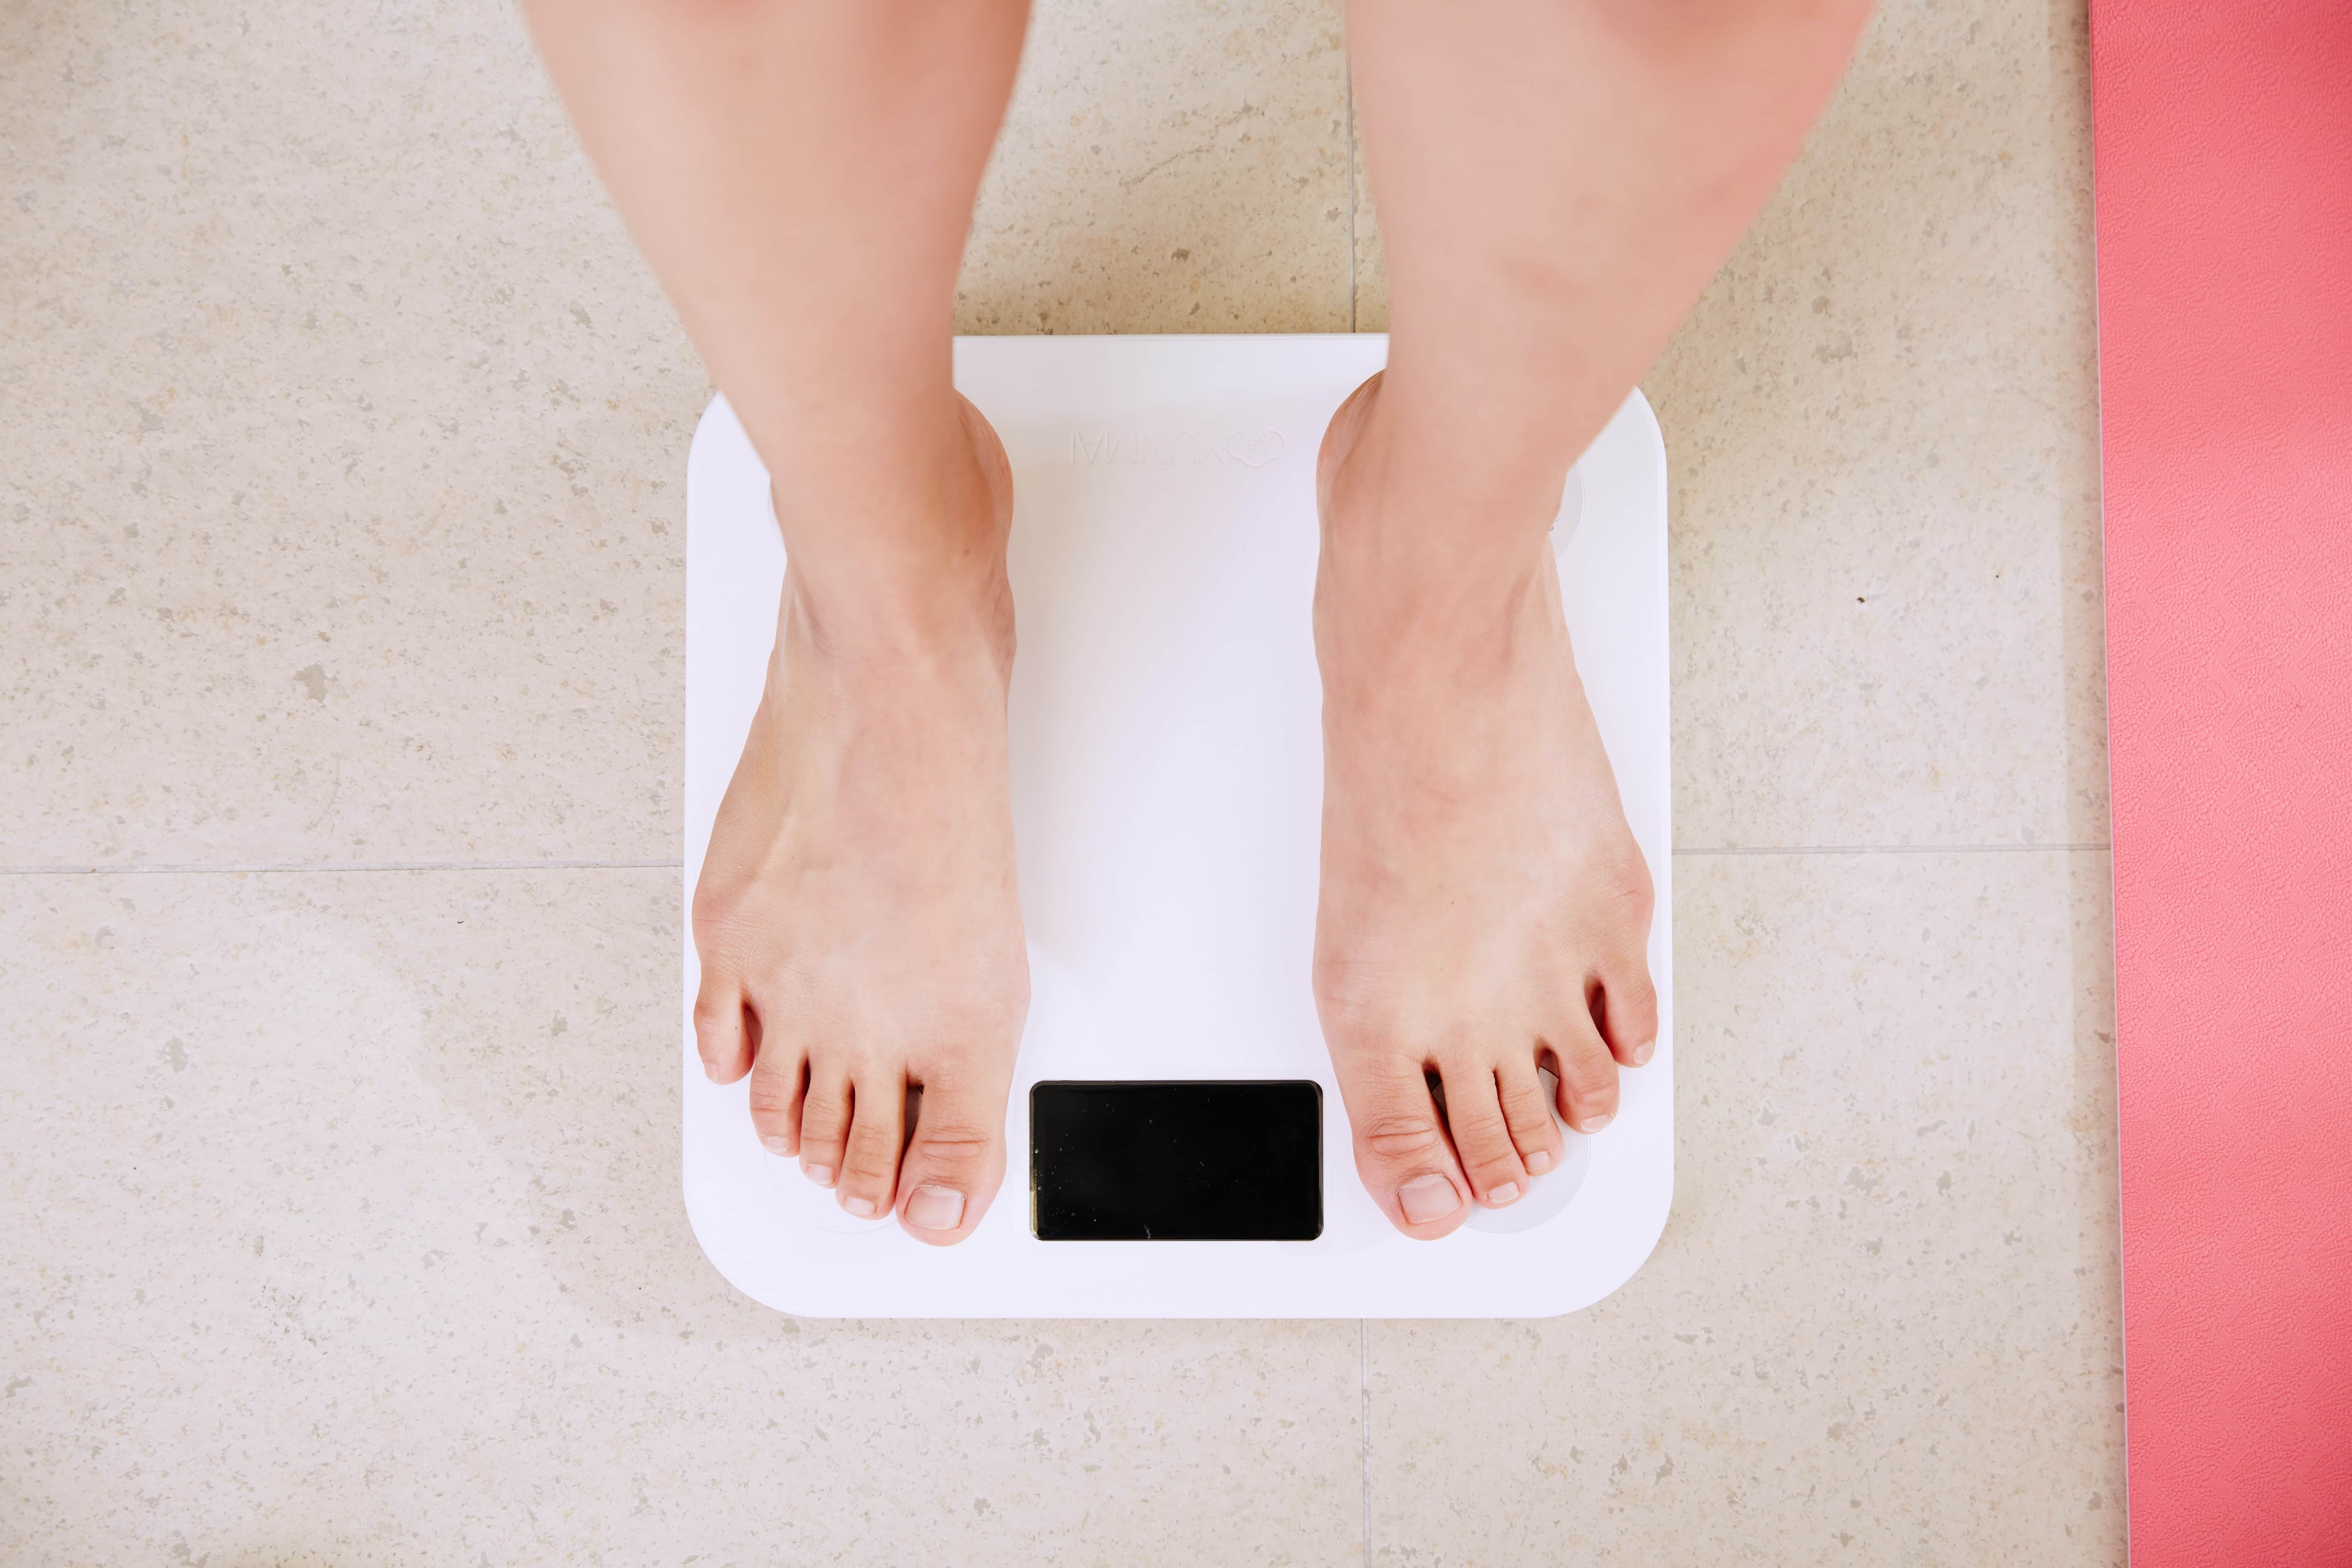 hypnosis for weight loss Ottawa